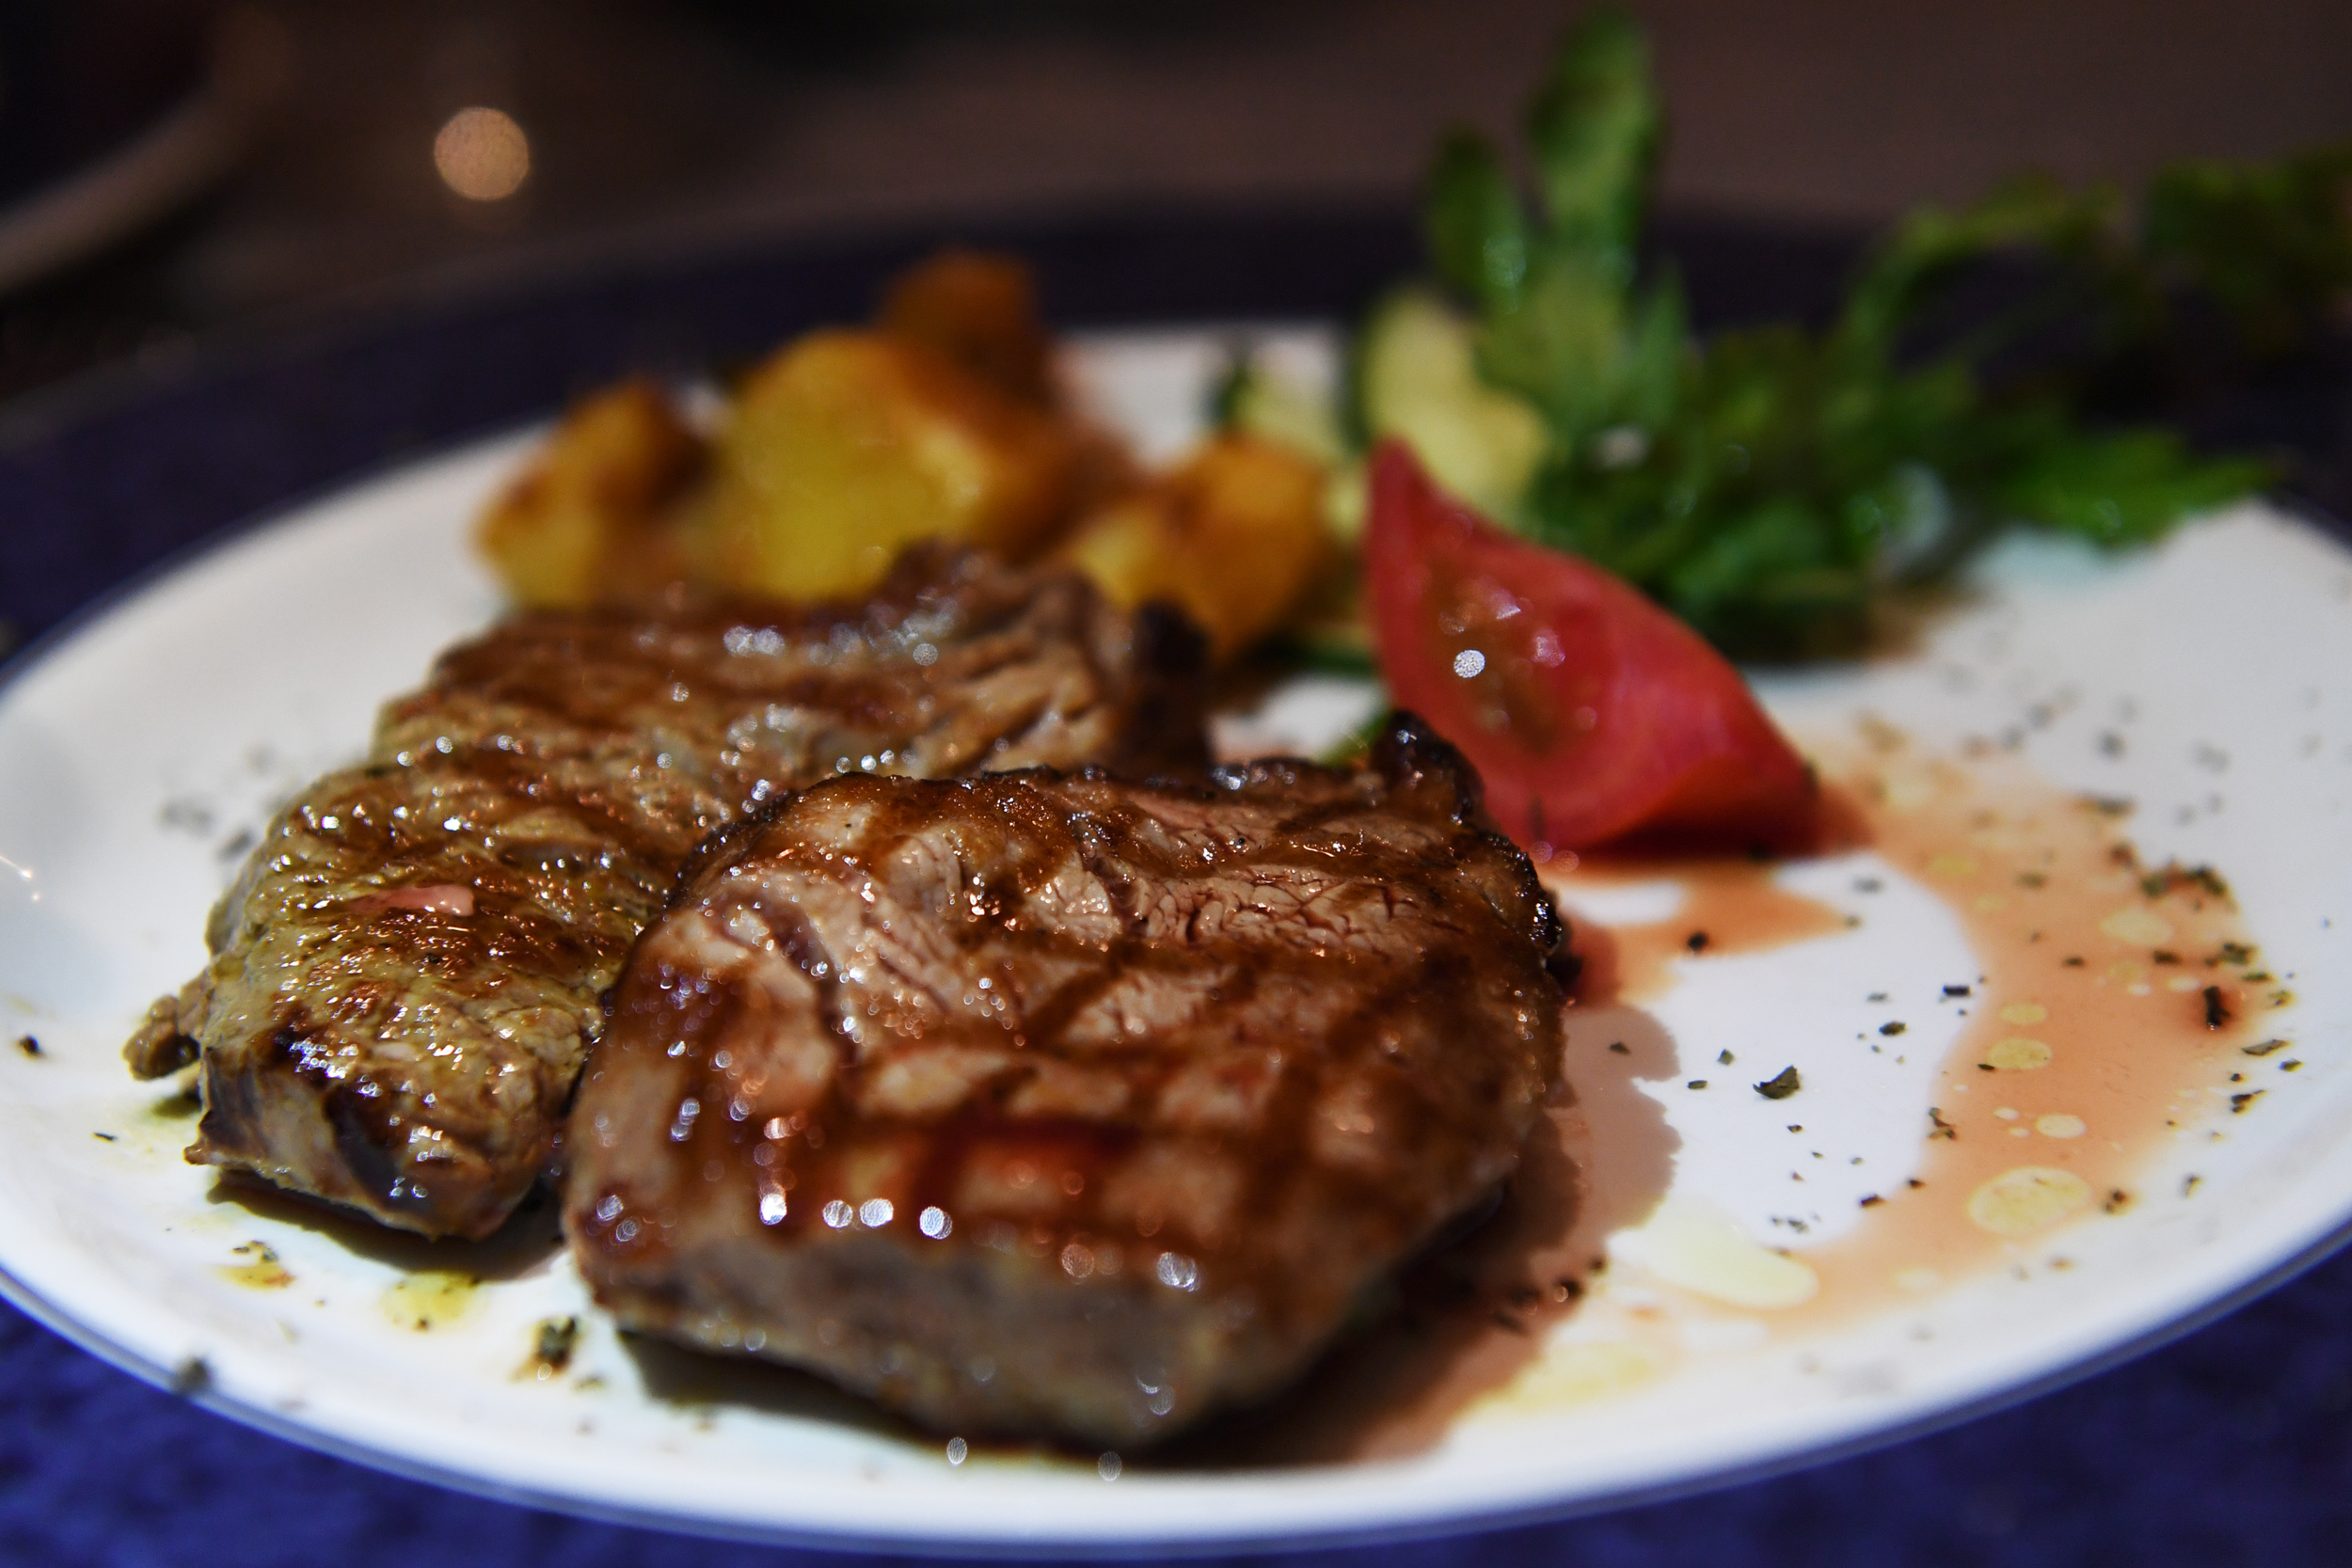 The steak at San Cristobal Paladar.